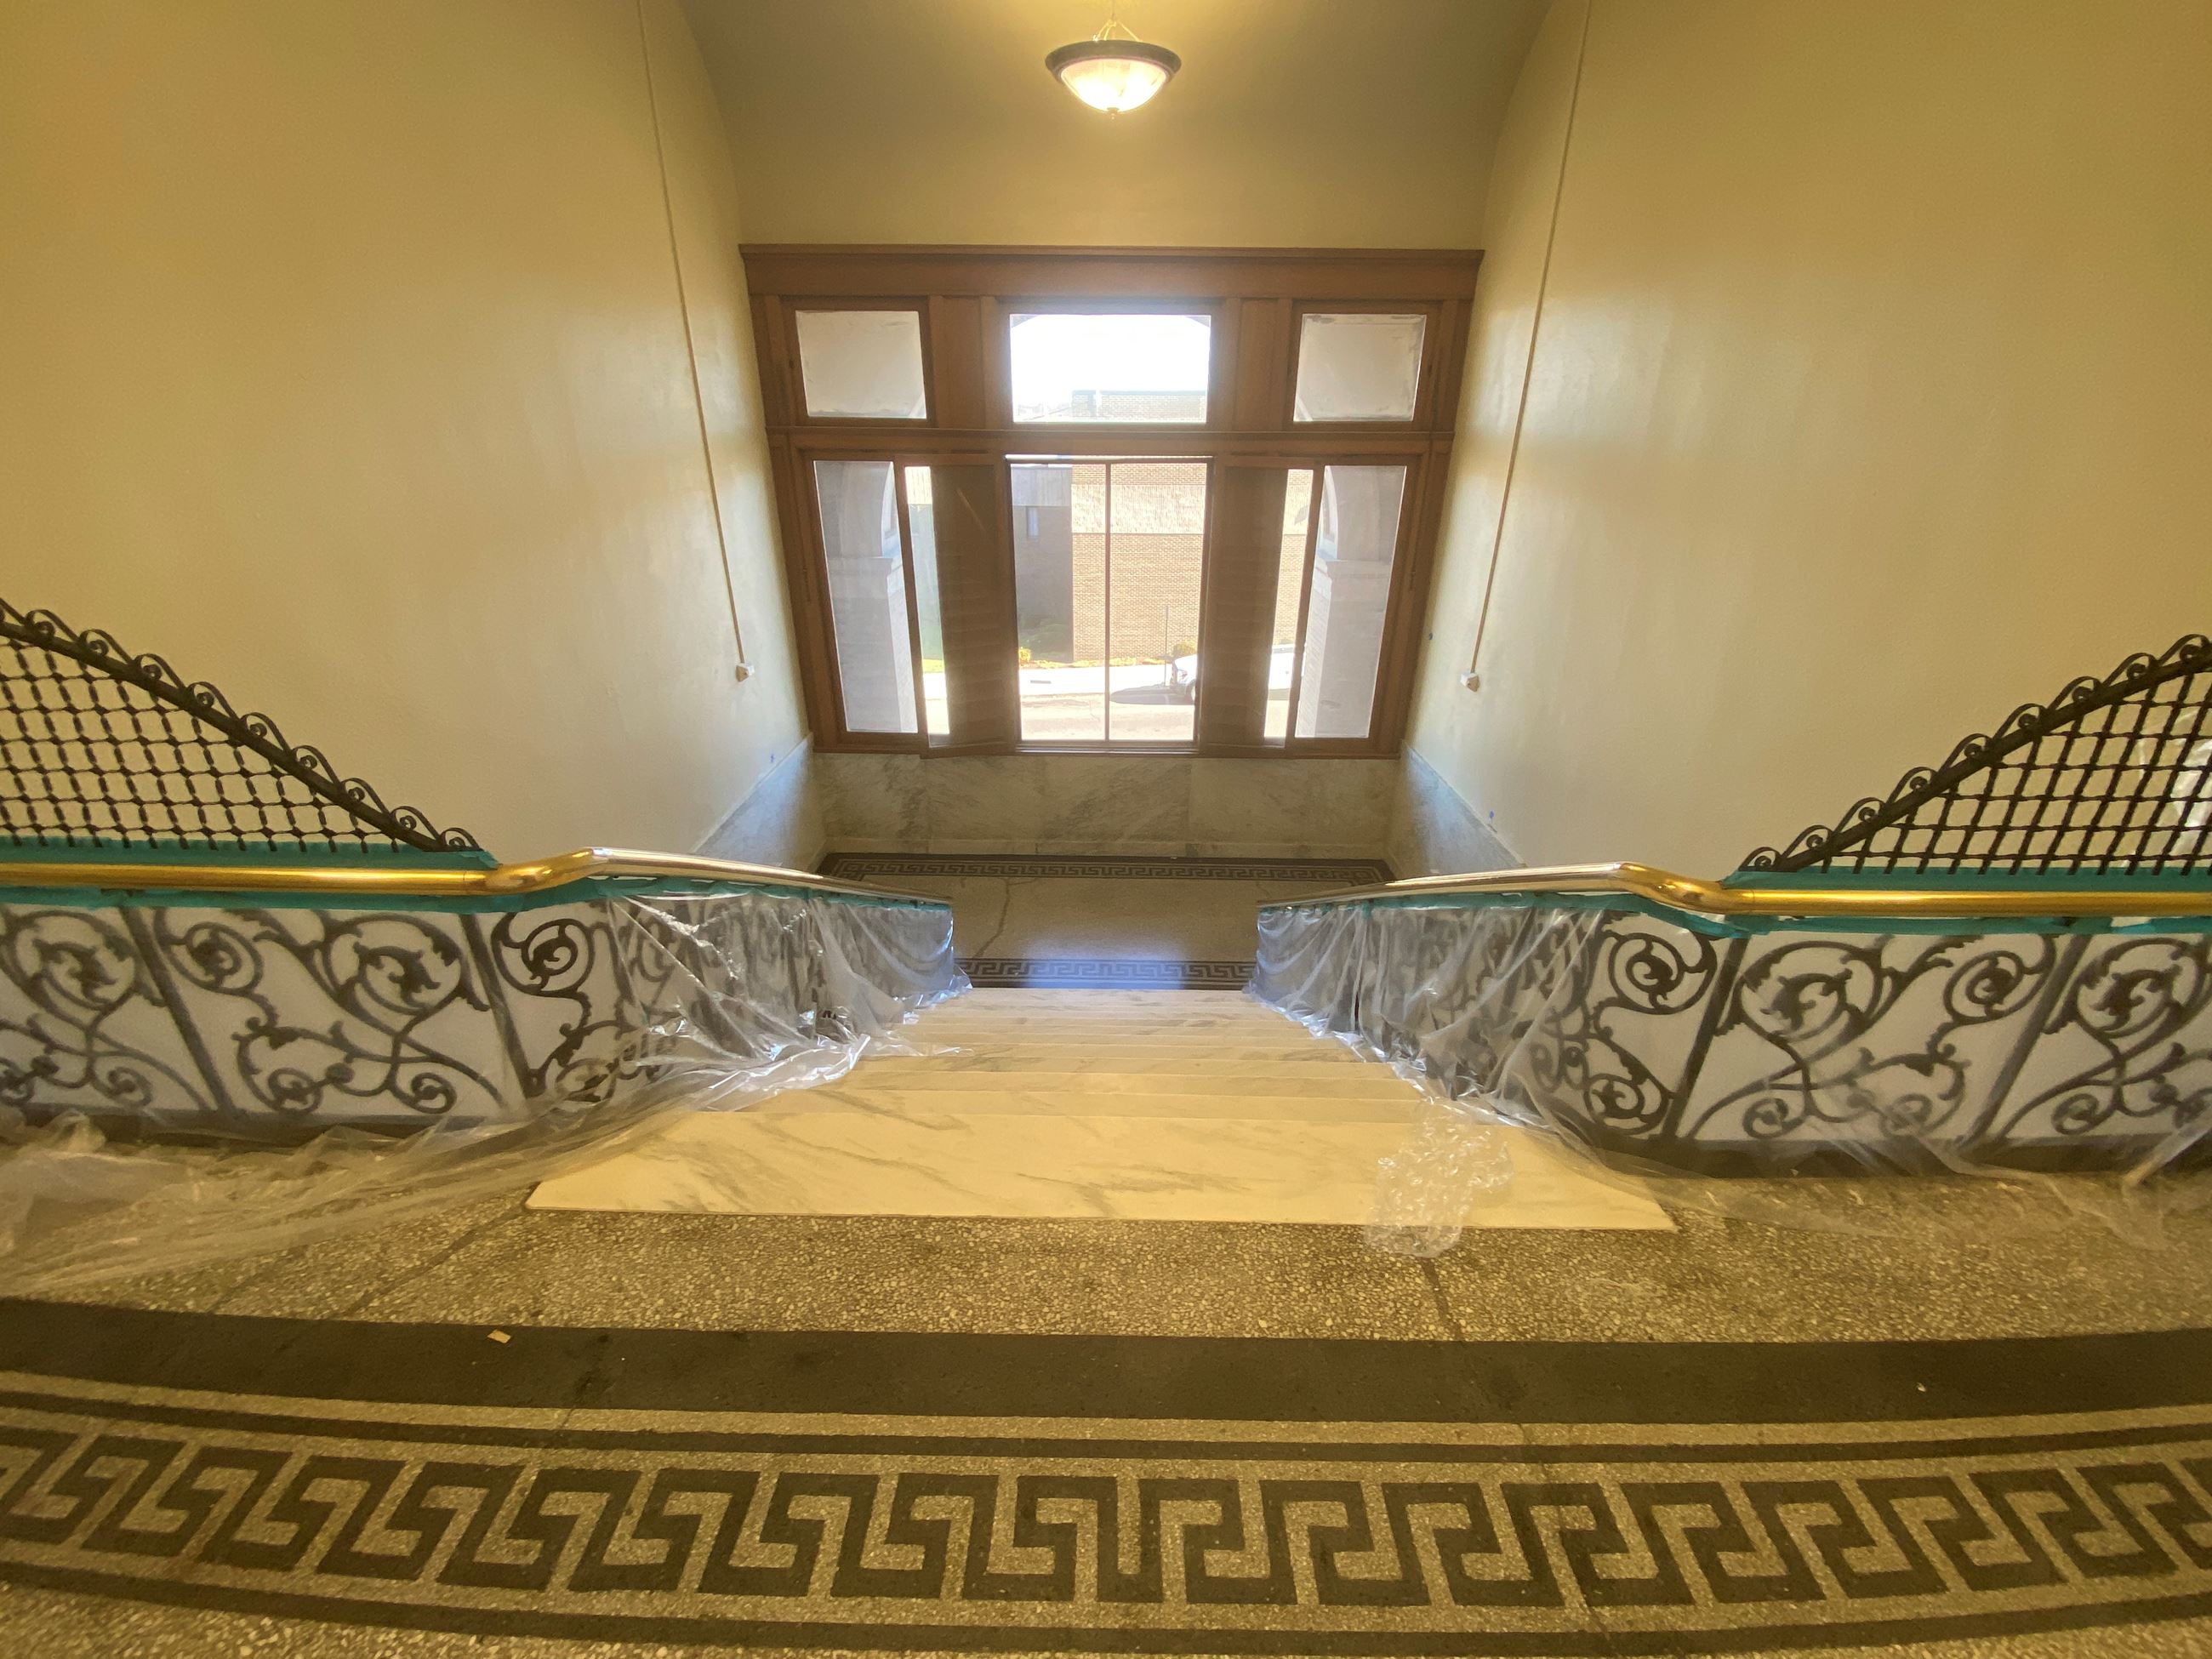 A.B. Graham interior hallway and staircase photo